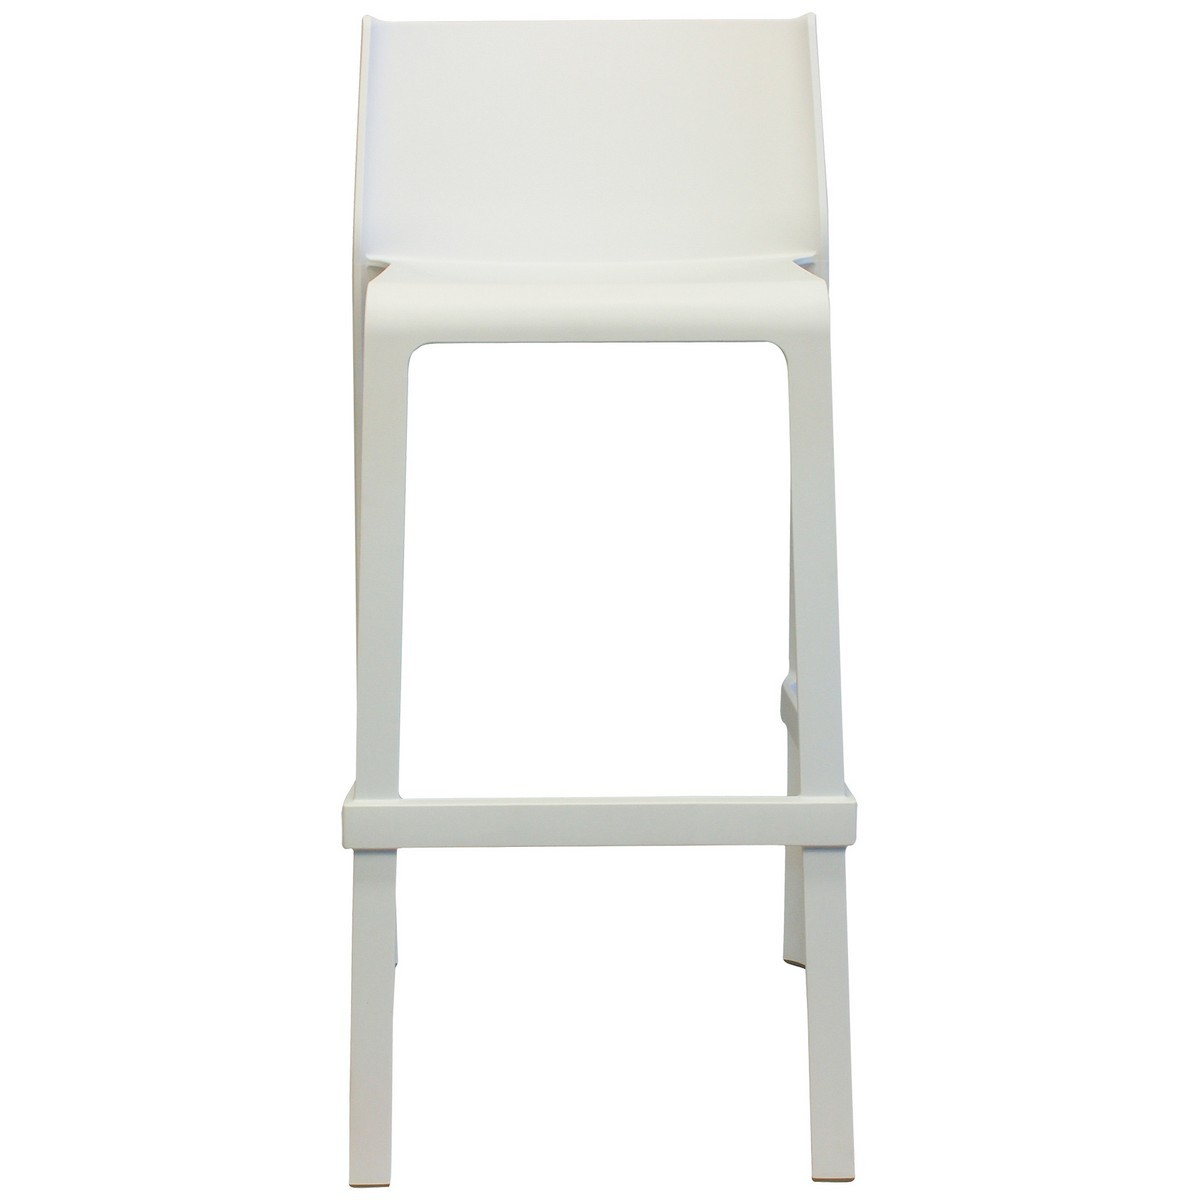 Trill Italian Made Commercial Grade Indoor / Outdoor Bar Stool, White